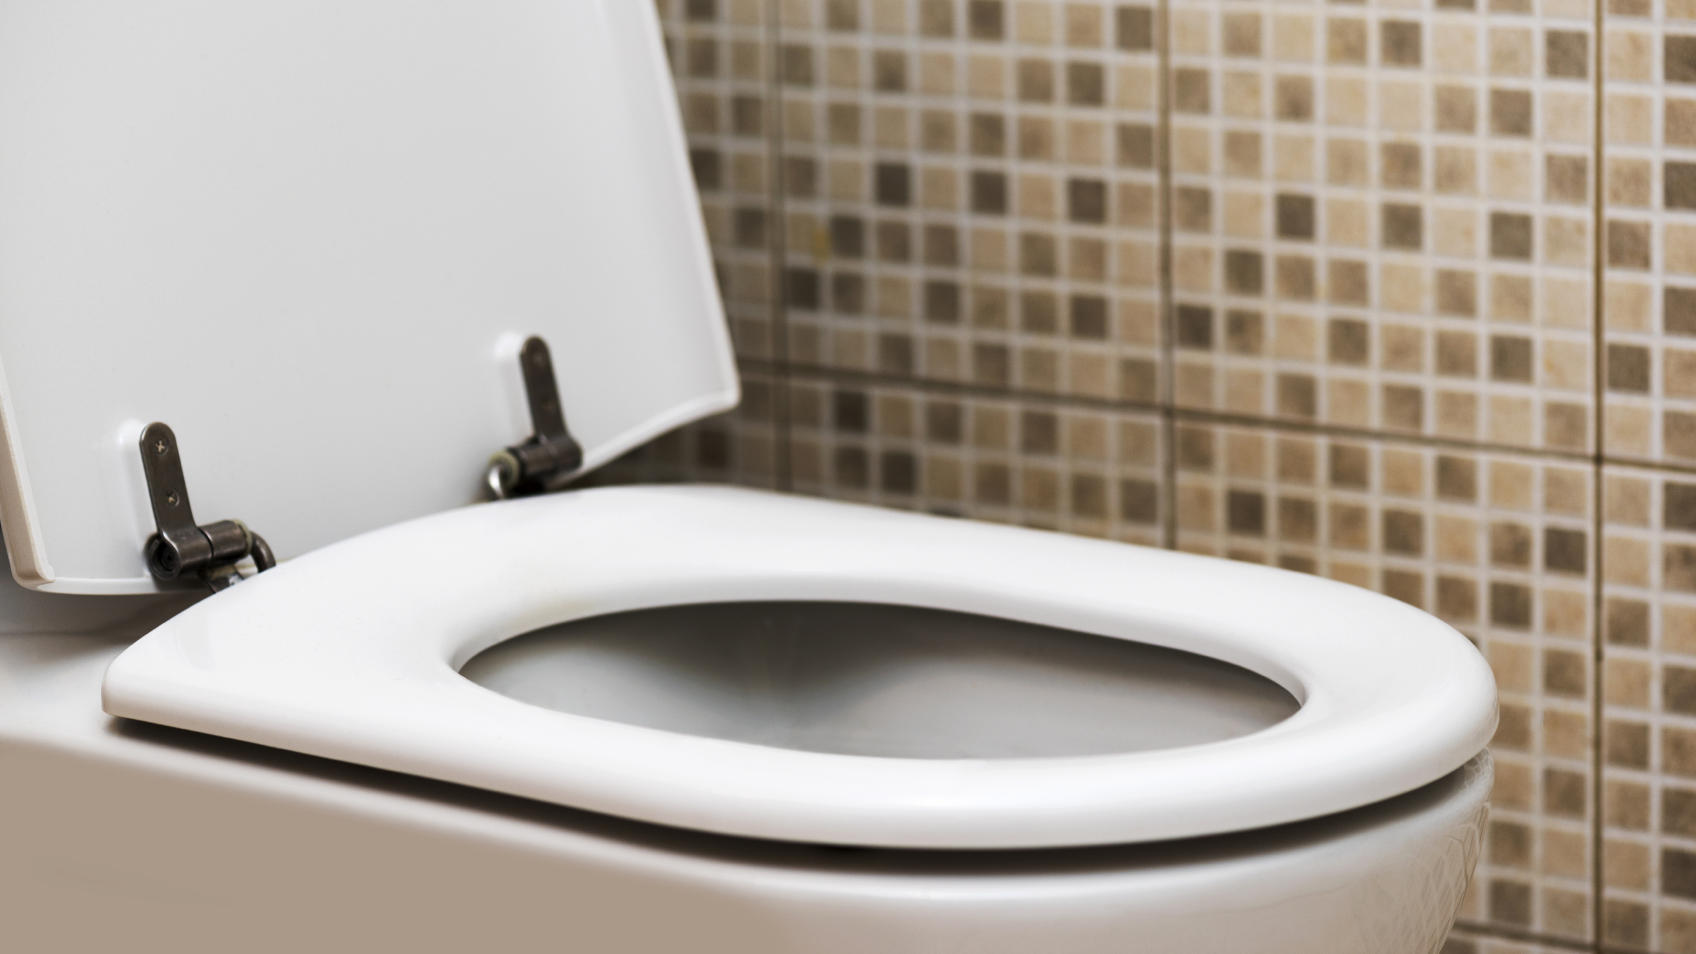 Toilets aren't the germiest place in your home.